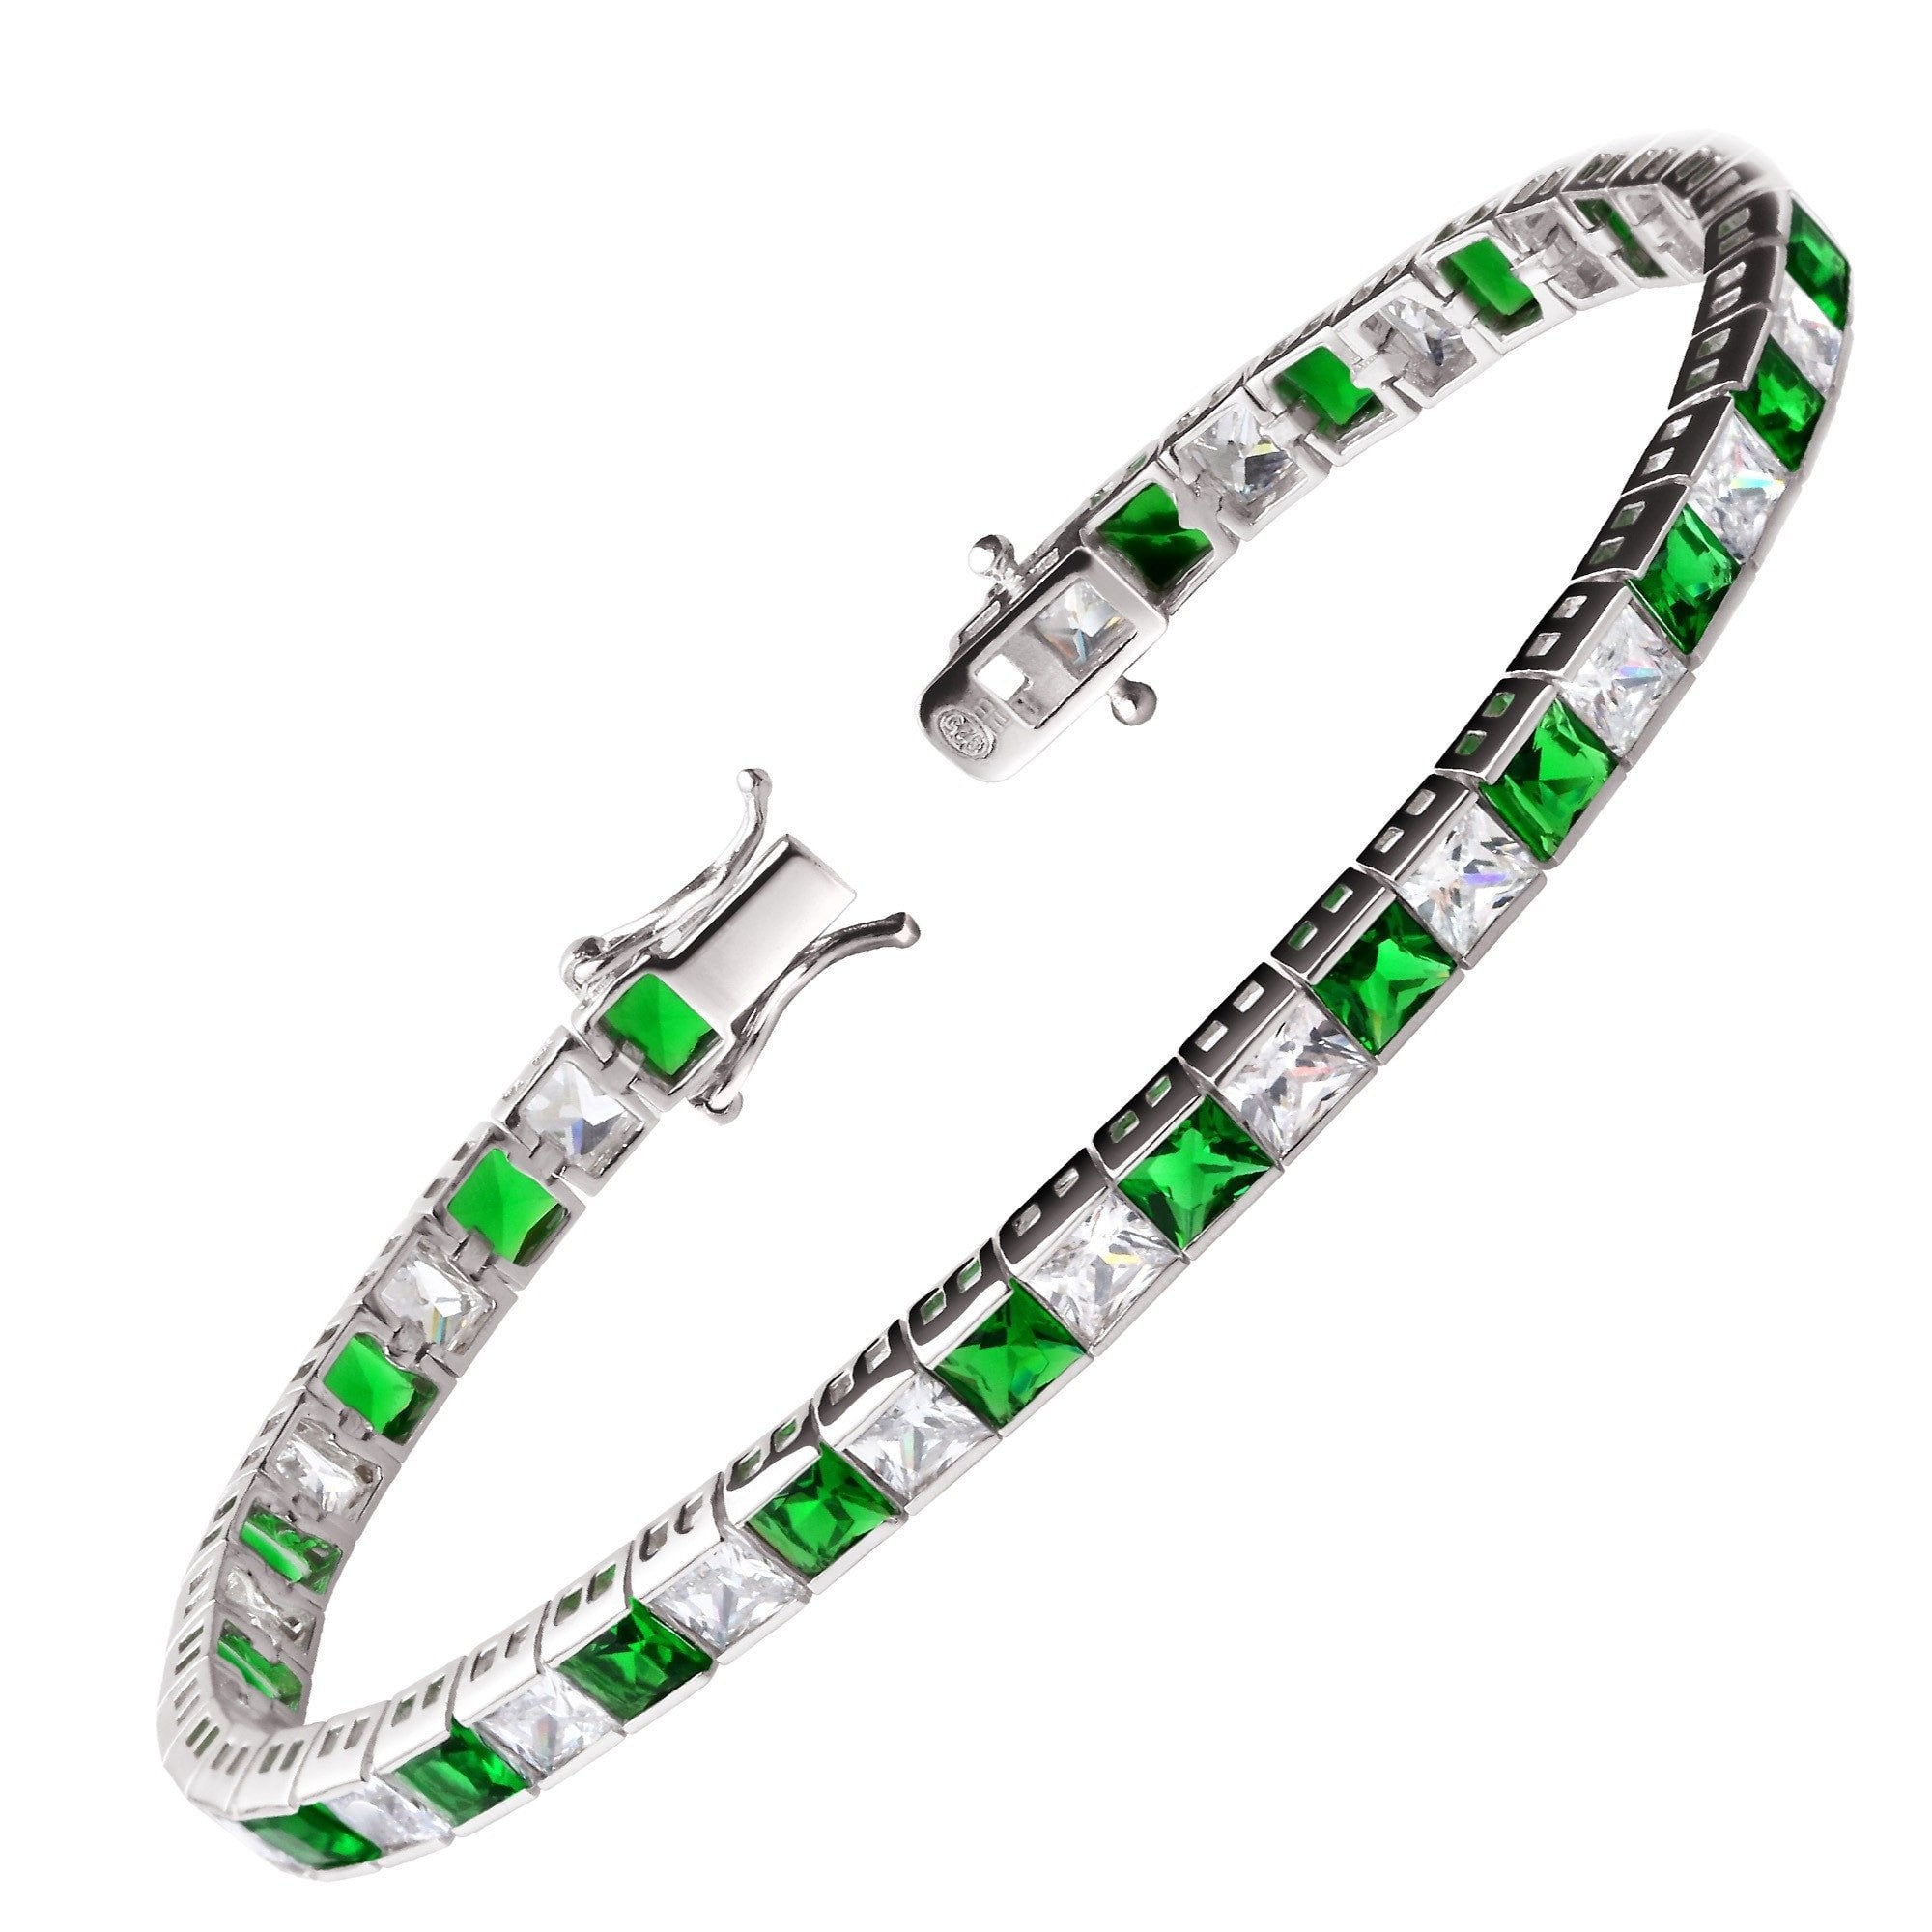 quality completely wear made p studded rounds emerald gemstone bracelet jewels these excellent silver weight are natural gleam sterling with bangles light daily